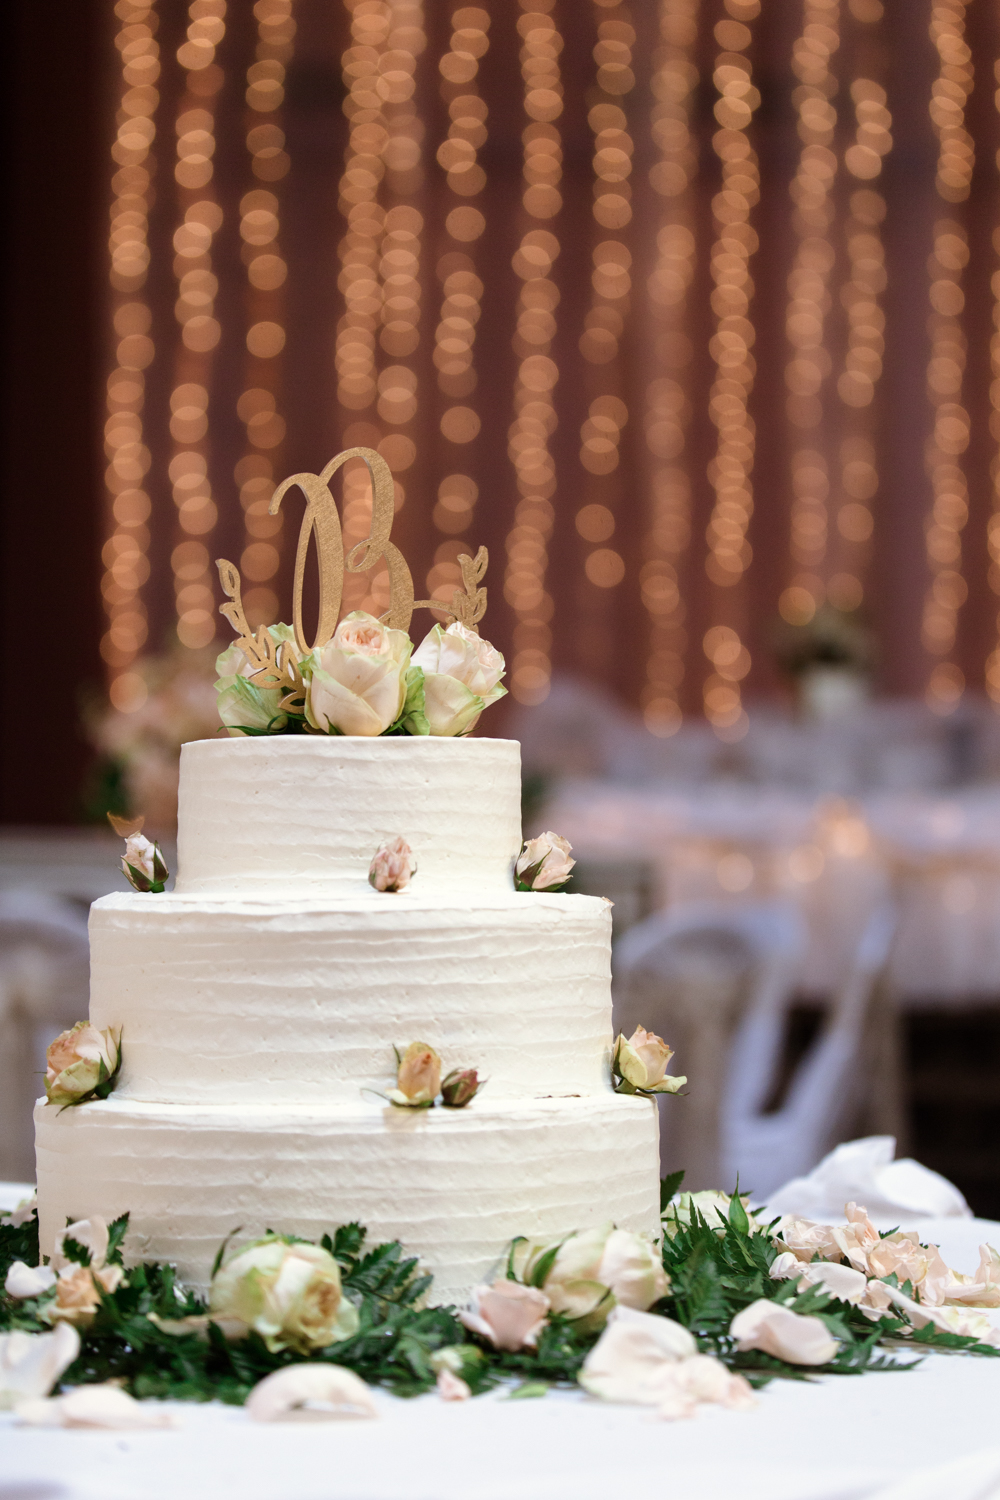 Pittsburgh Wedding Cake at The Priory